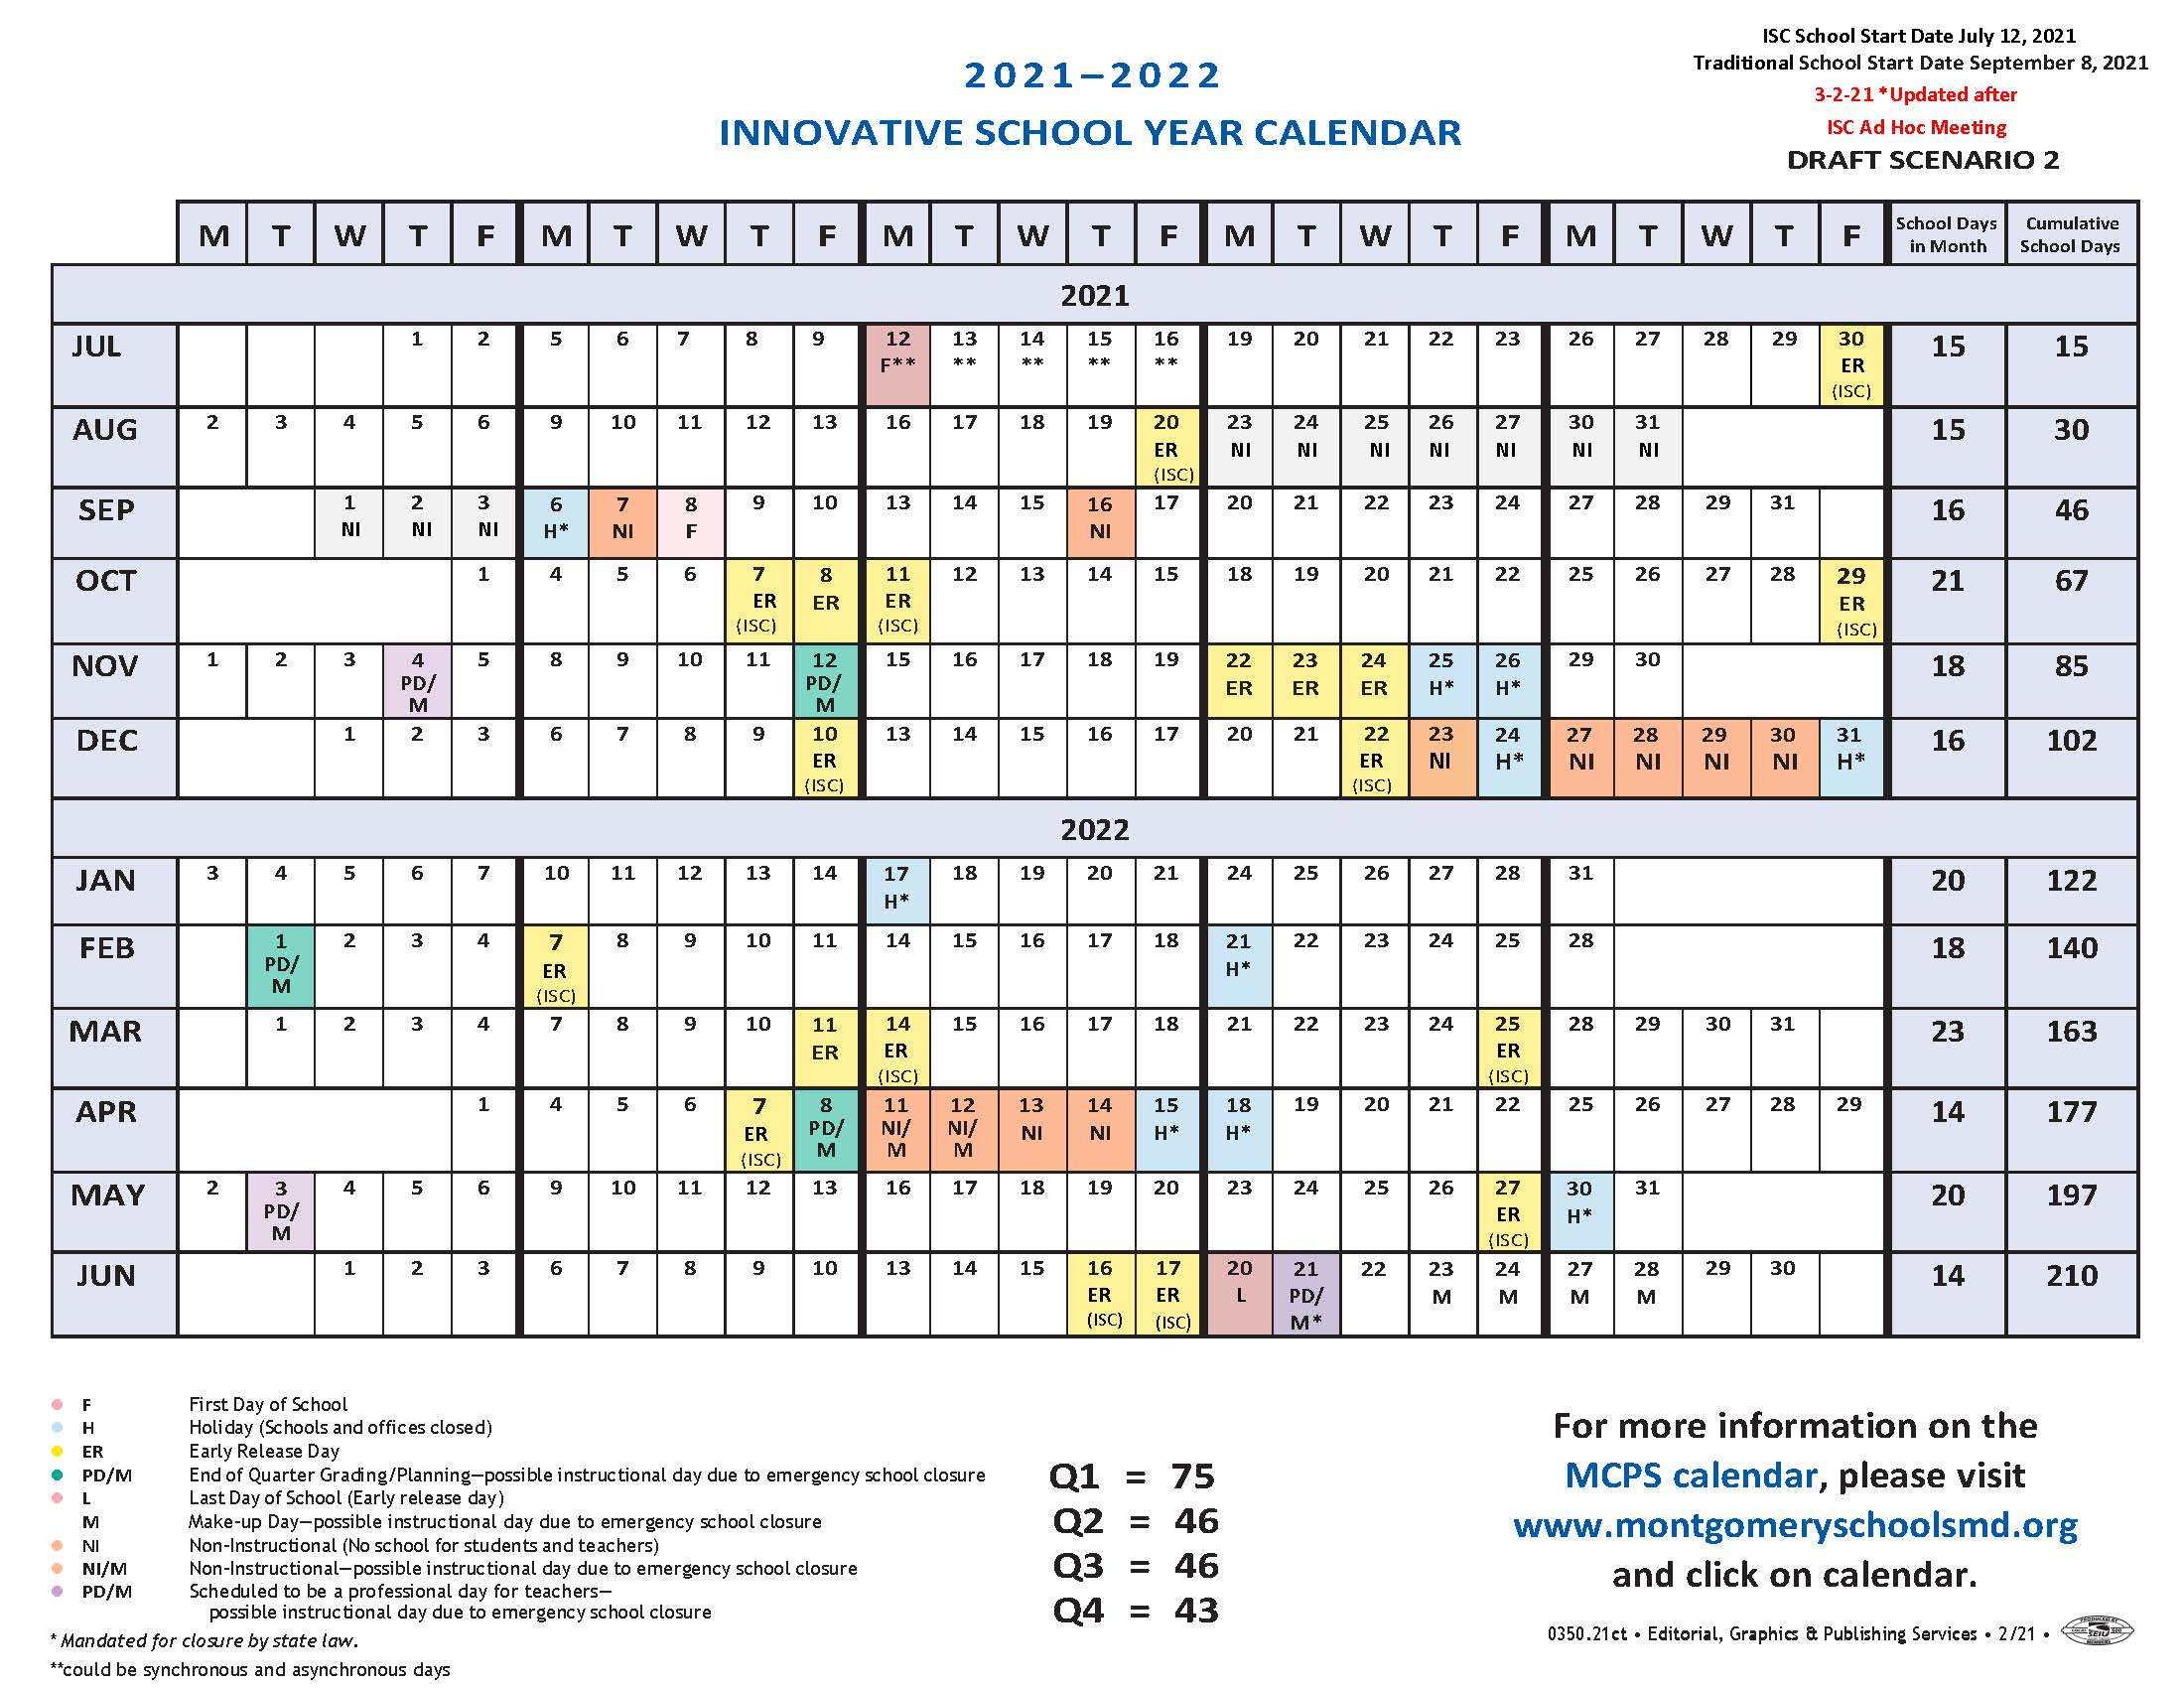 Adopted FY2022 Innovative Calendar